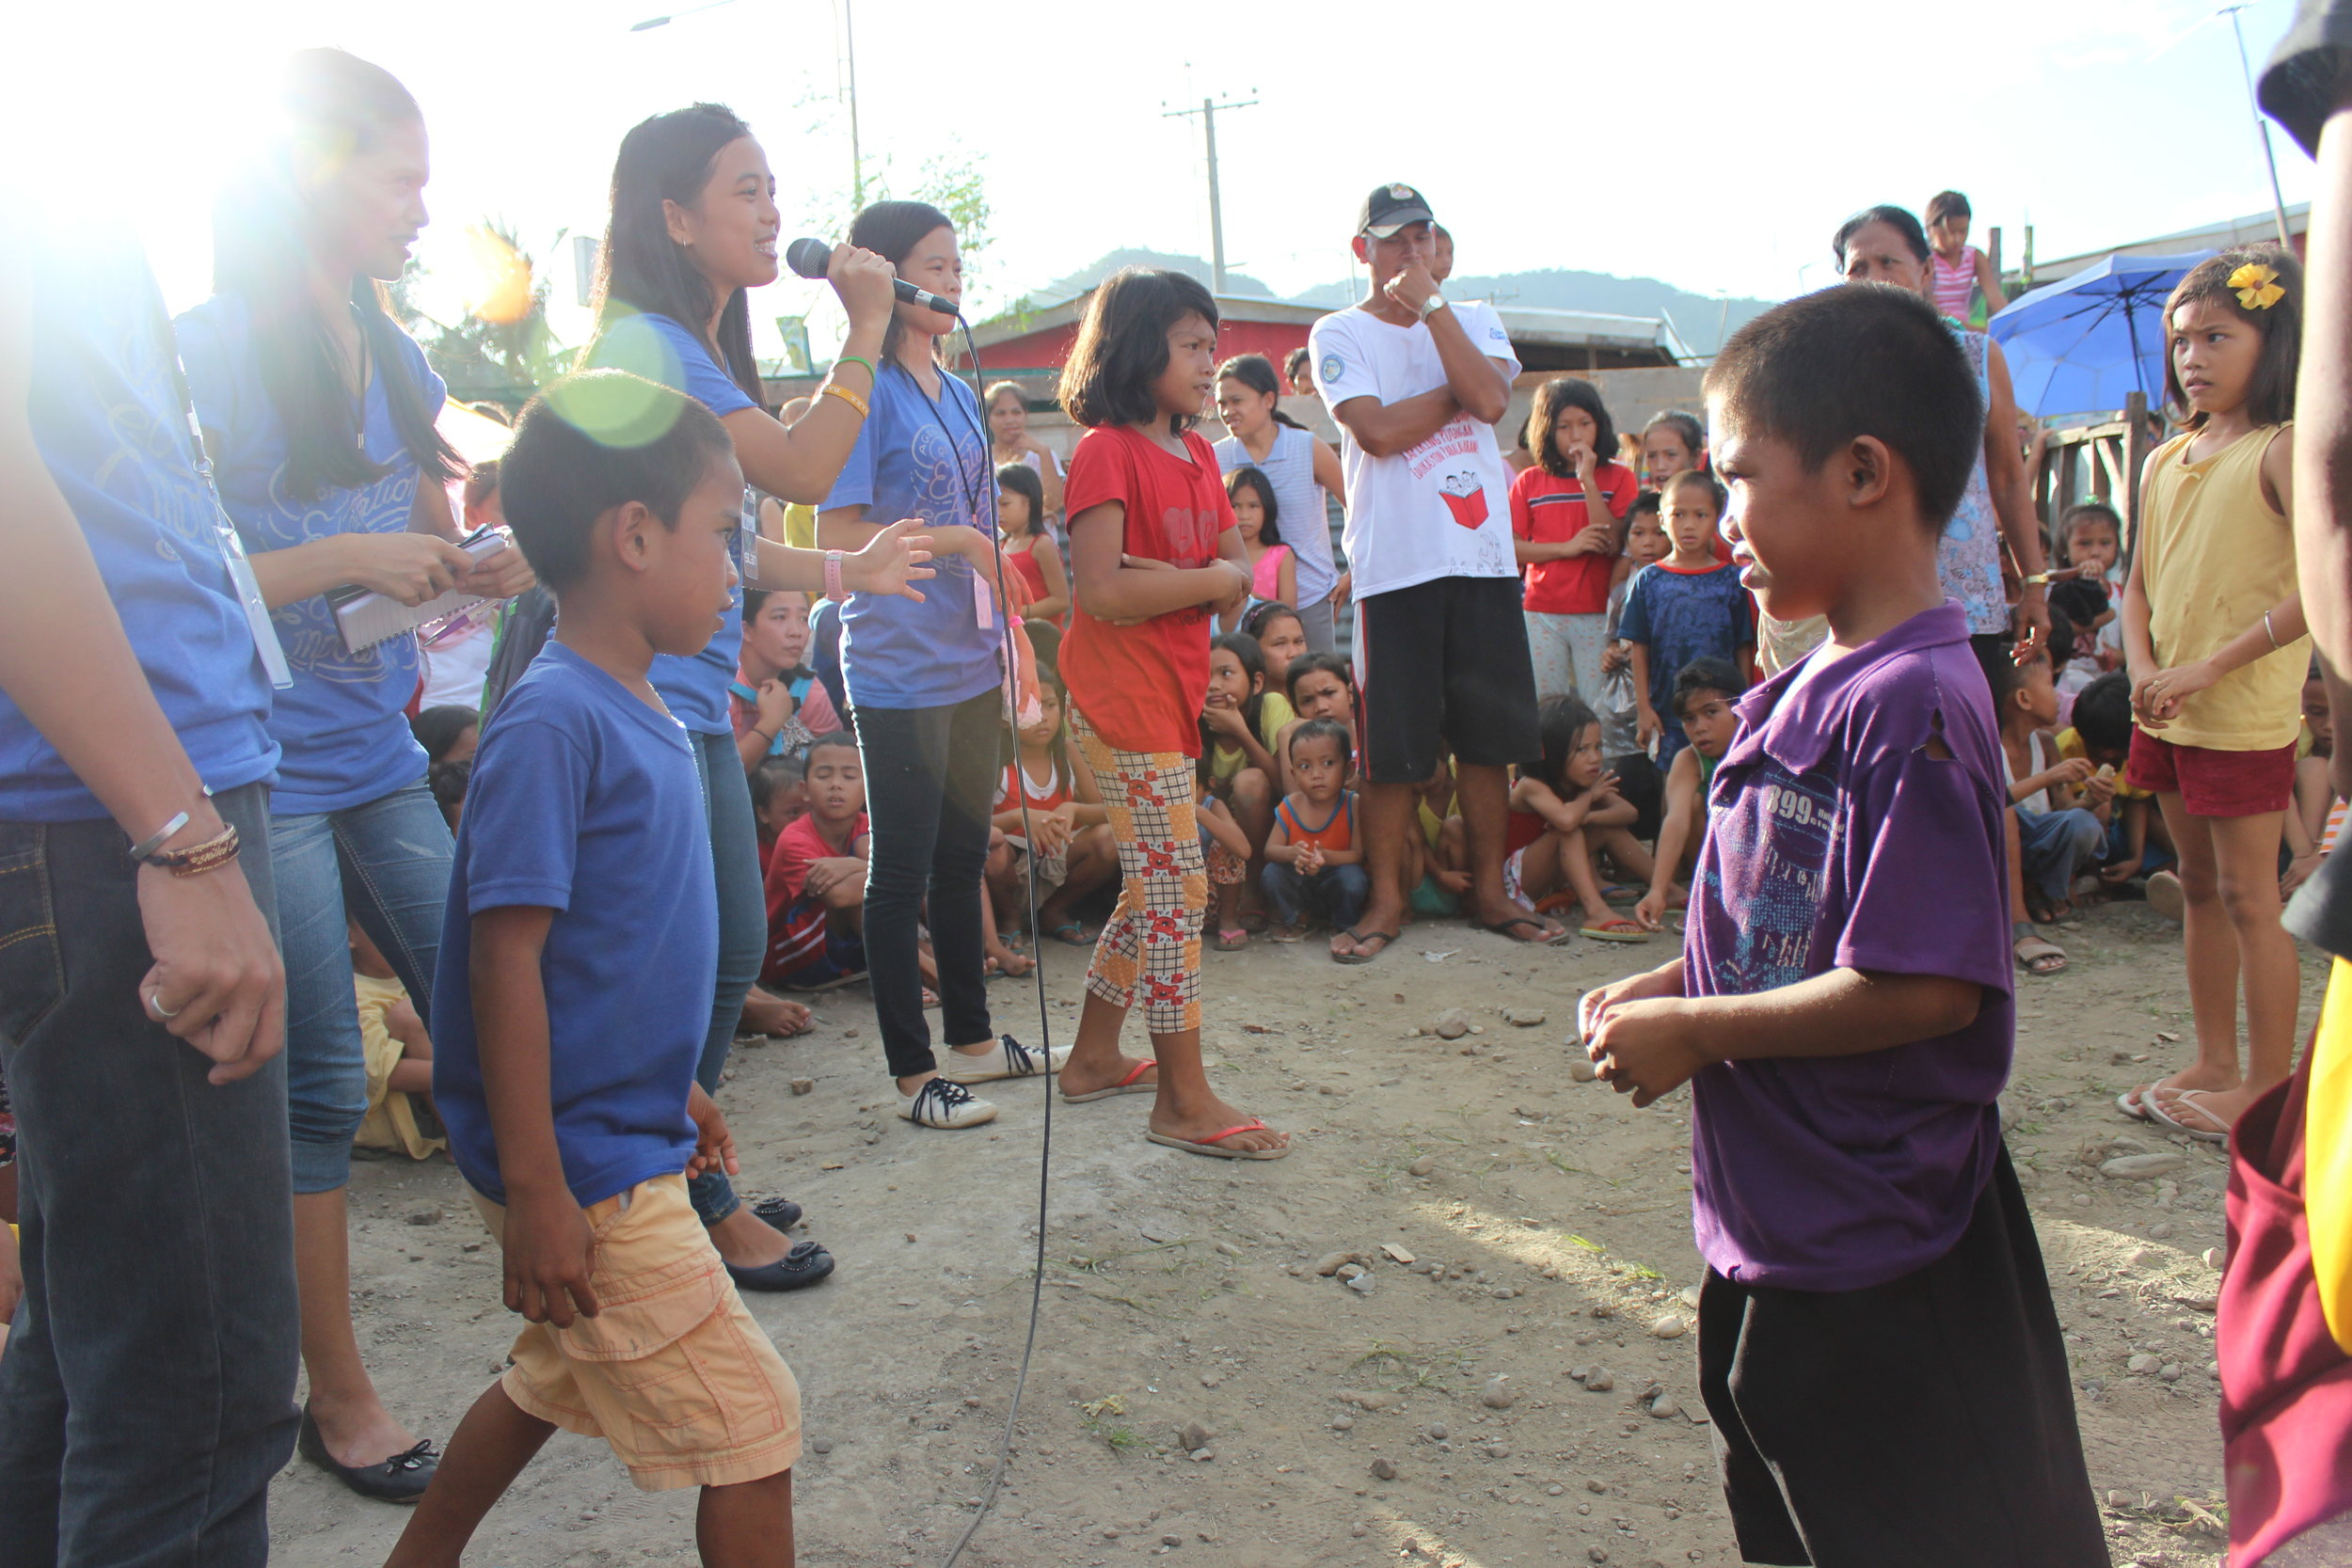 We helped youth in Tacloban City facilitate a feeding and children's program at a resettlement camp where over 500 children resided in very cramped conditions for over 2 years.